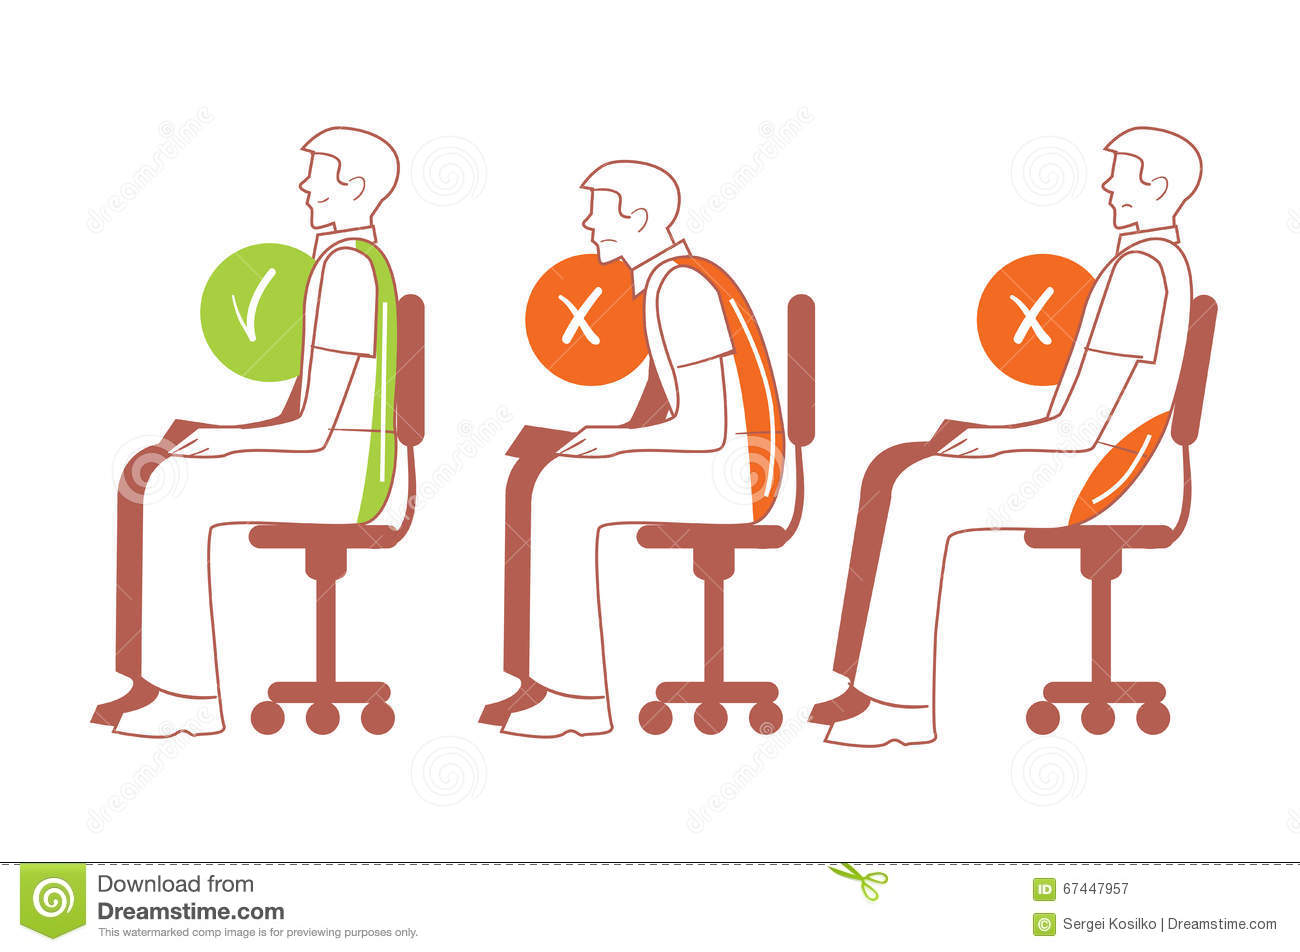 how to fix posture when sitting